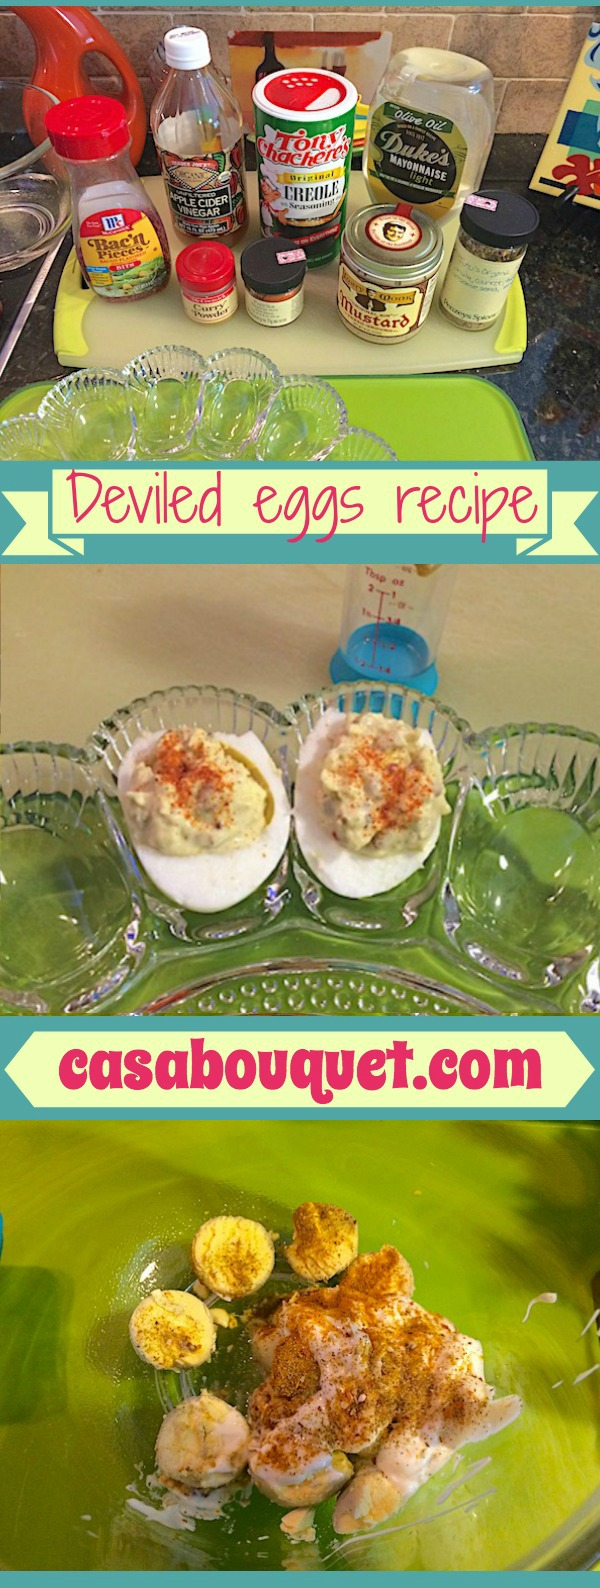 Deviled eggs recipe – perfect, best, classic – tips for boiling eggs and making zesty filling. Use good mustard, curry, bacon bits, and Cajun spice for flavor.